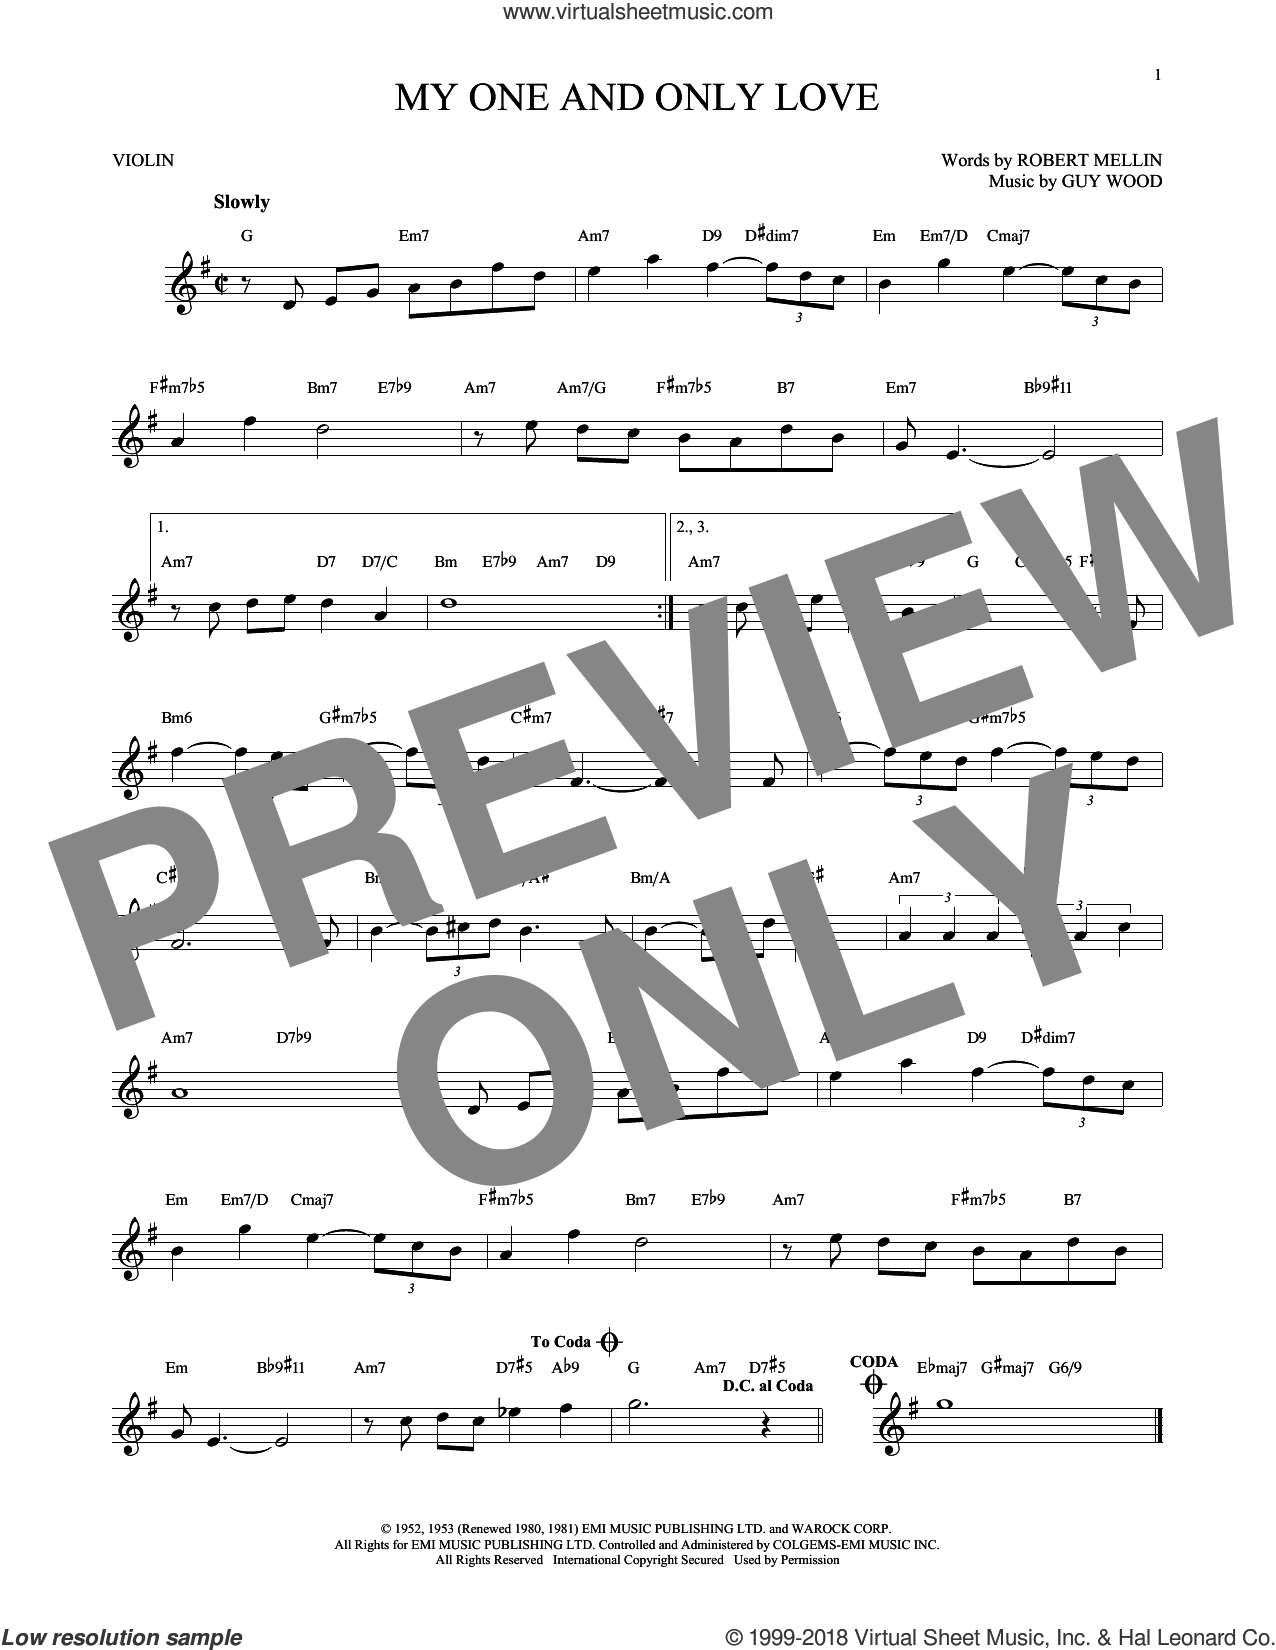 My One And Only Love sheet music for violin solo by Guy Wood and Robert Mellin, intermediate skill level